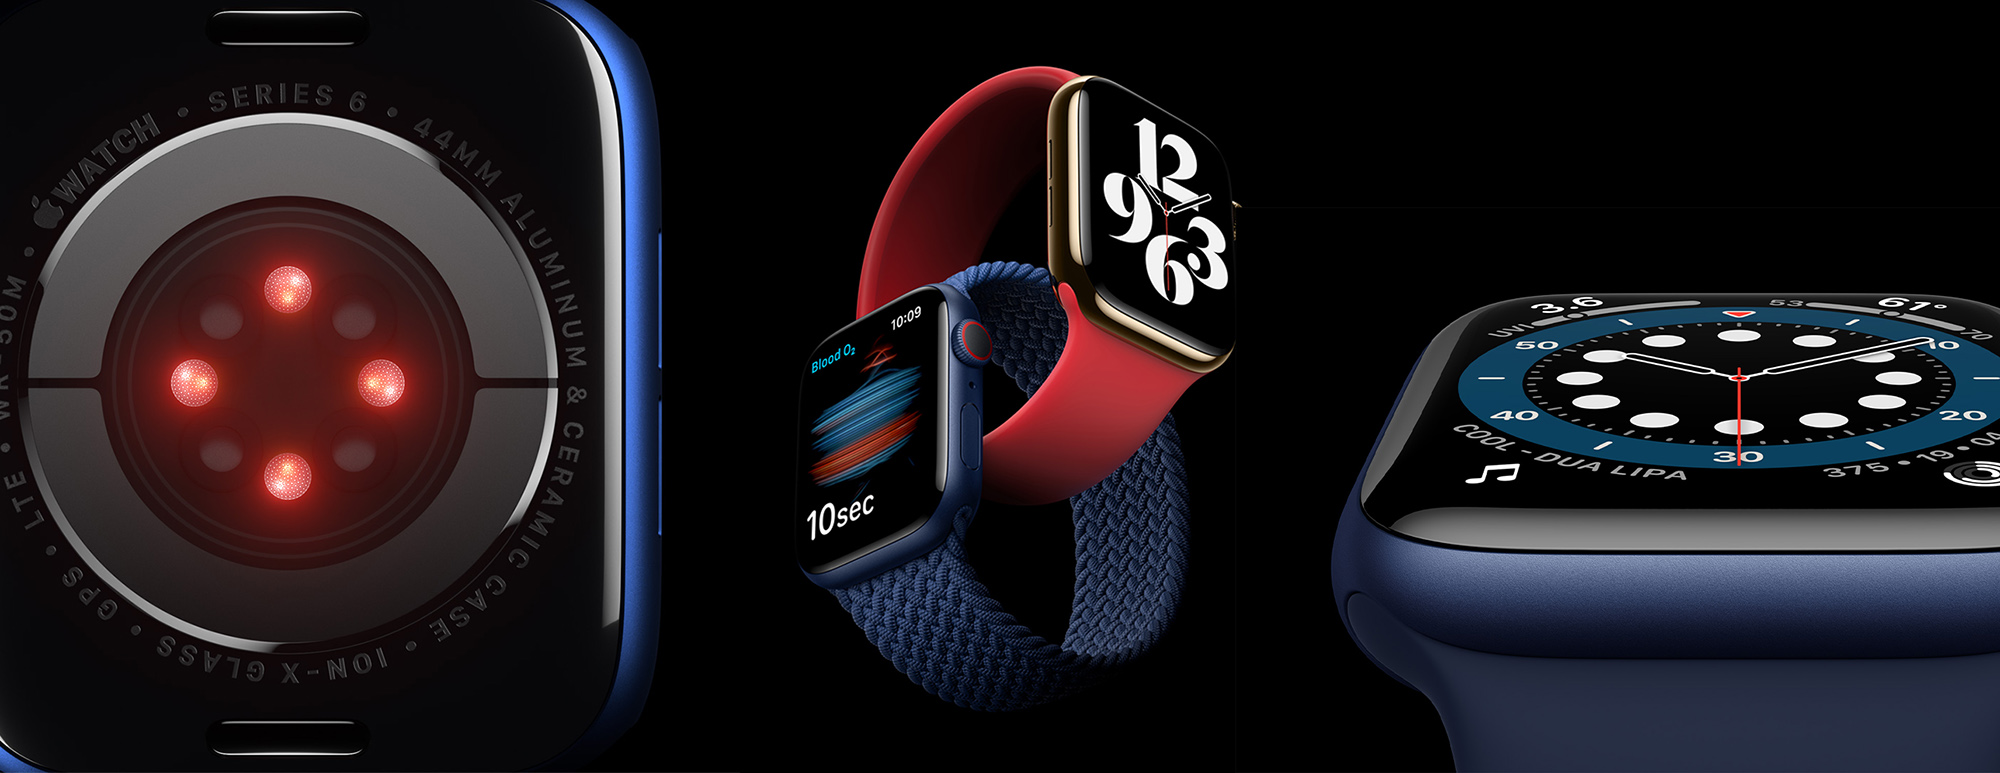 Apple Watch Series 6 has a New Blue Case, Faster Dual-Core Processor and  Can Measure Blood Oxygen Levels - NYLON SINGAPORE